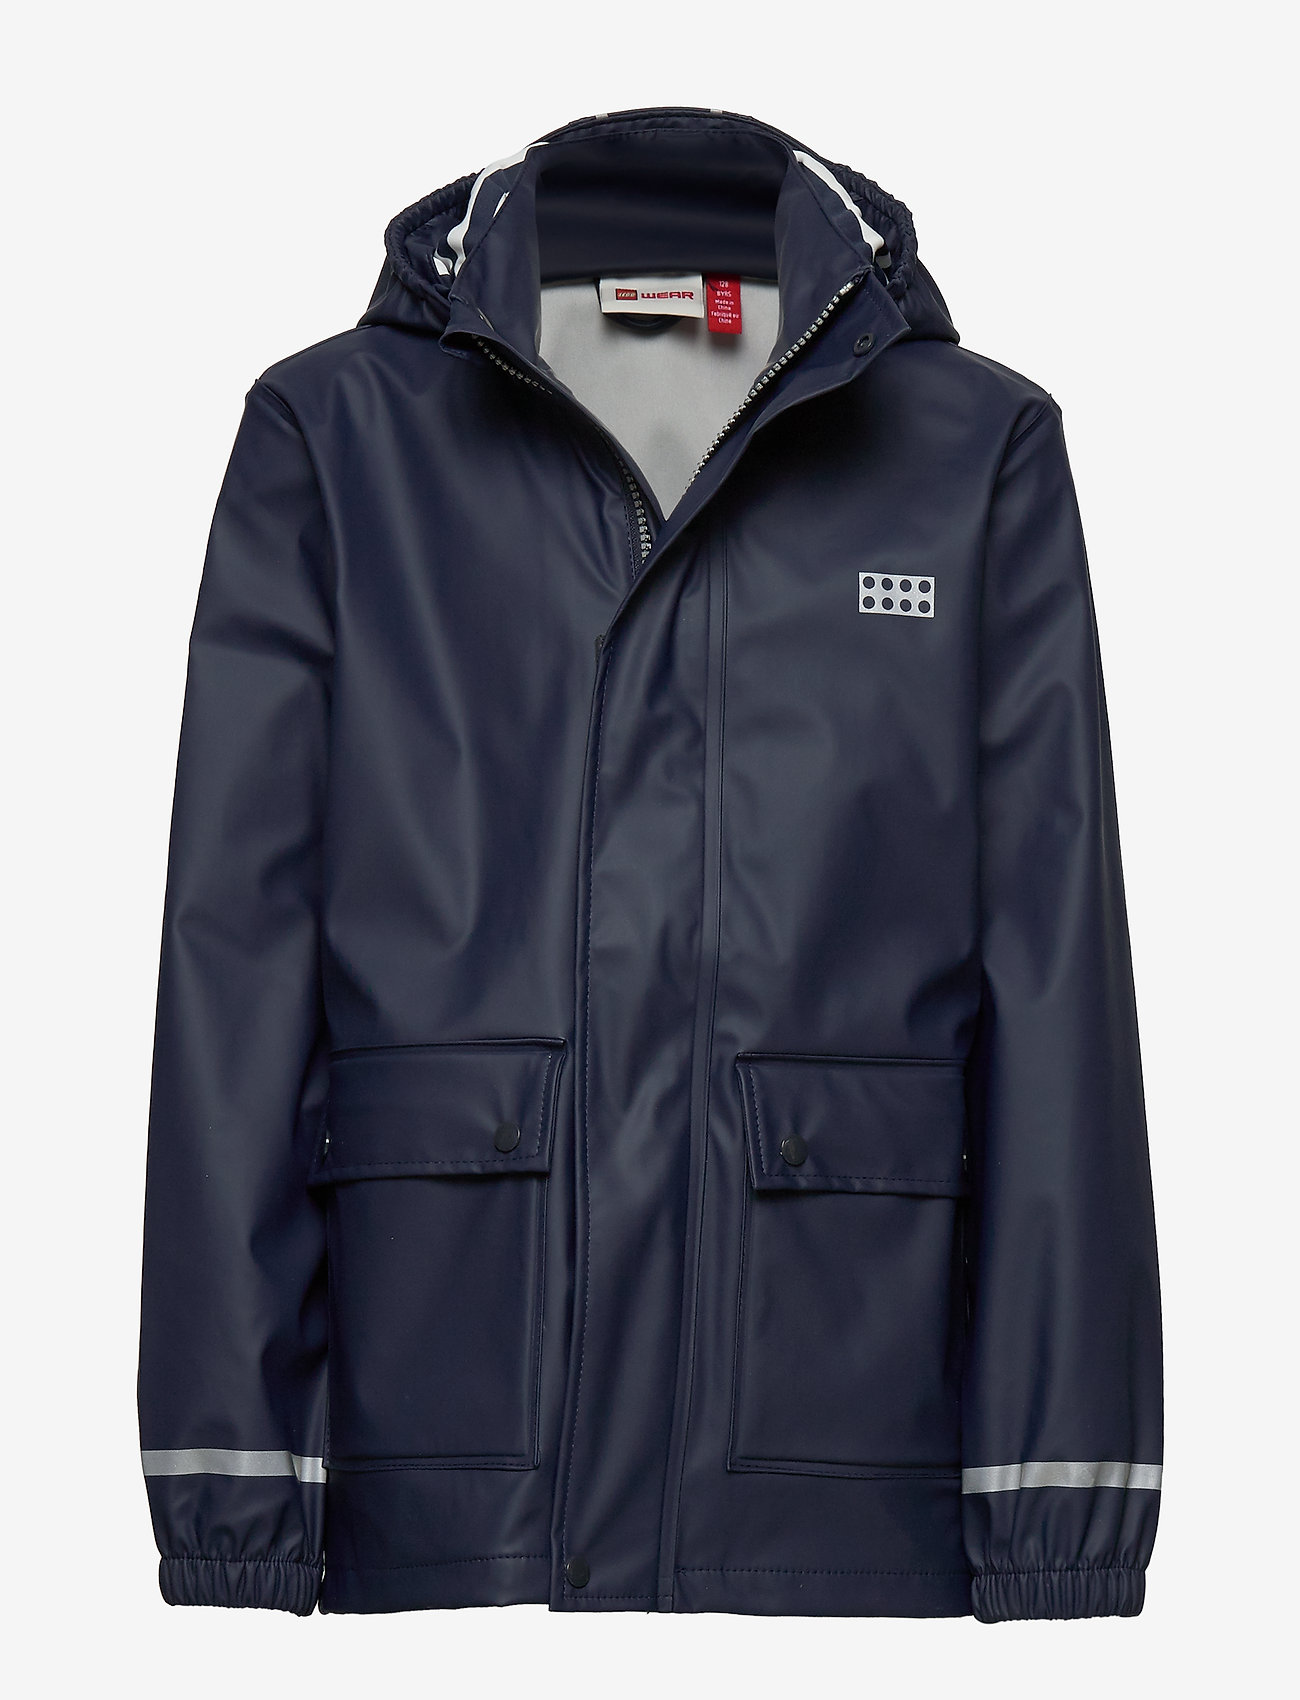 Lego wear - LWJOSHUA 212 - RAIN JACKET - jakker - dark navy - 0